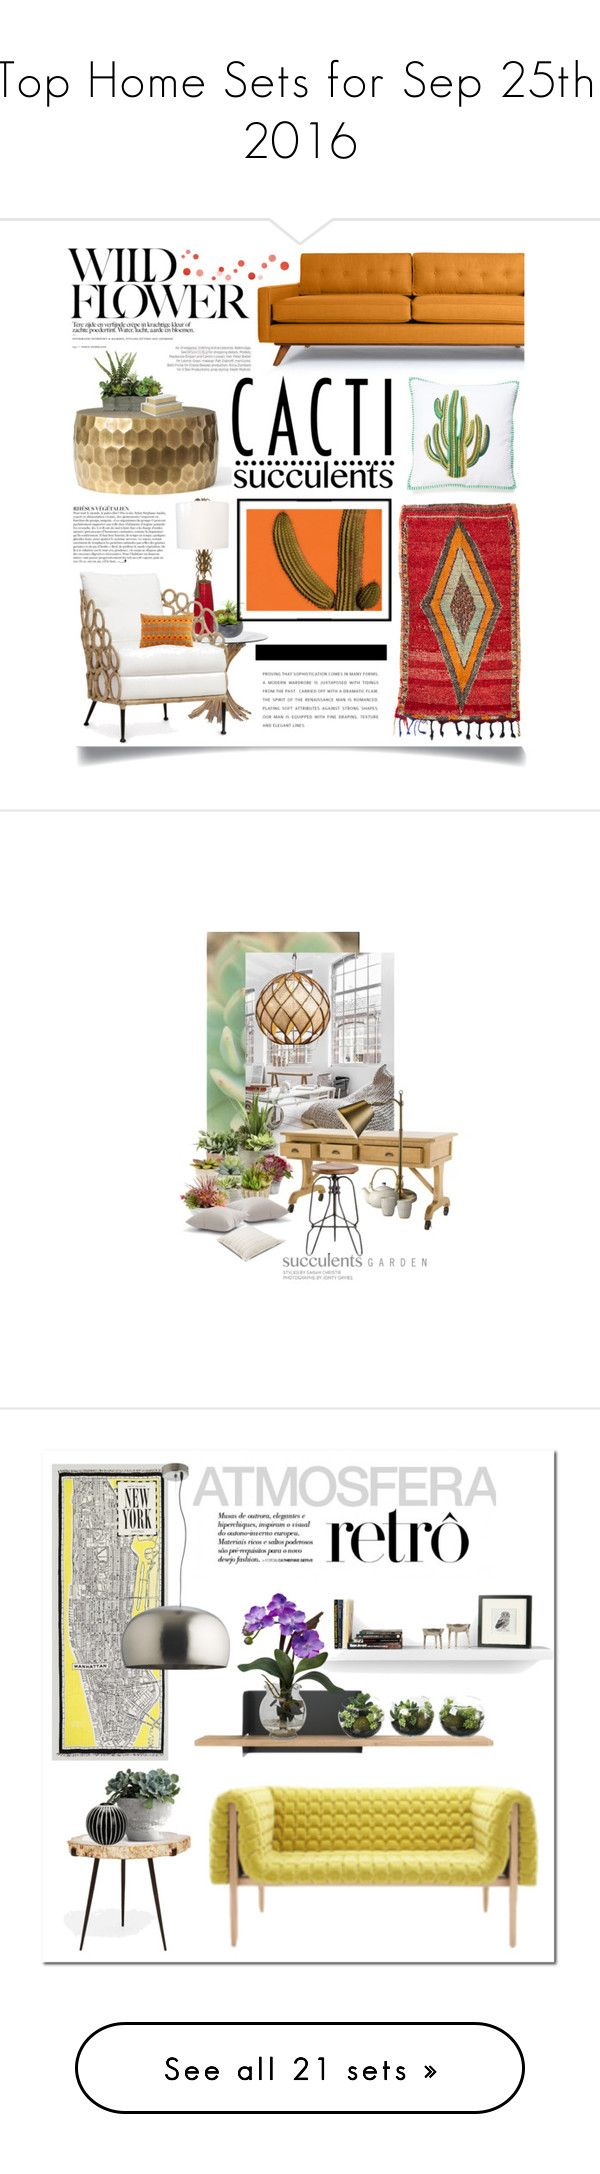 Threshold home decor shop for threshold home decor on polyvore -  Top Home Sets For Sep 25th 2016 By Polyvore Liked On Polyvore Interior Decoratinginterior